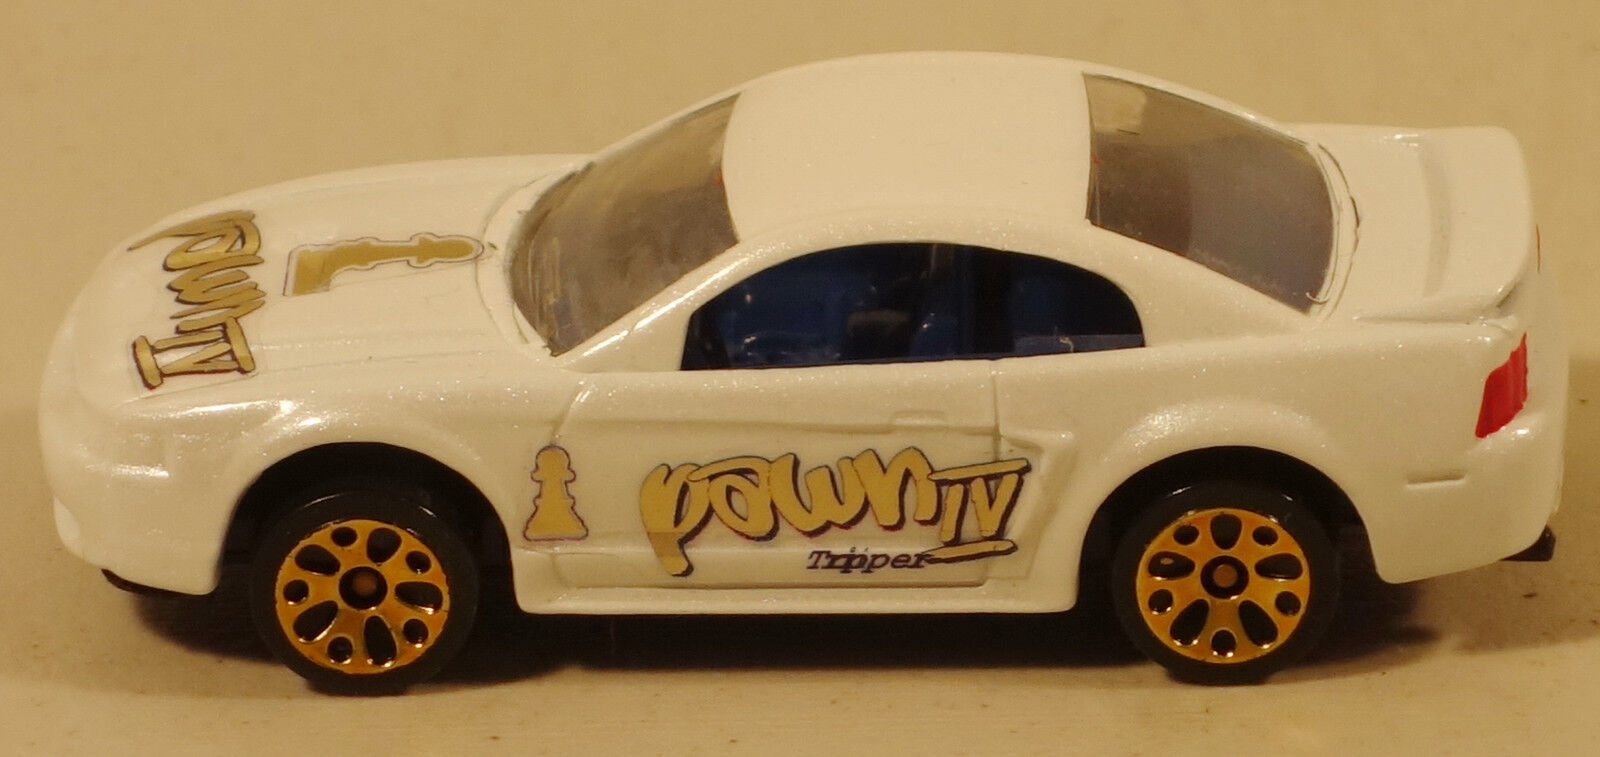 Dte selten matchbox superfast schach pearl Weiß edition 99 ford mustang prepro